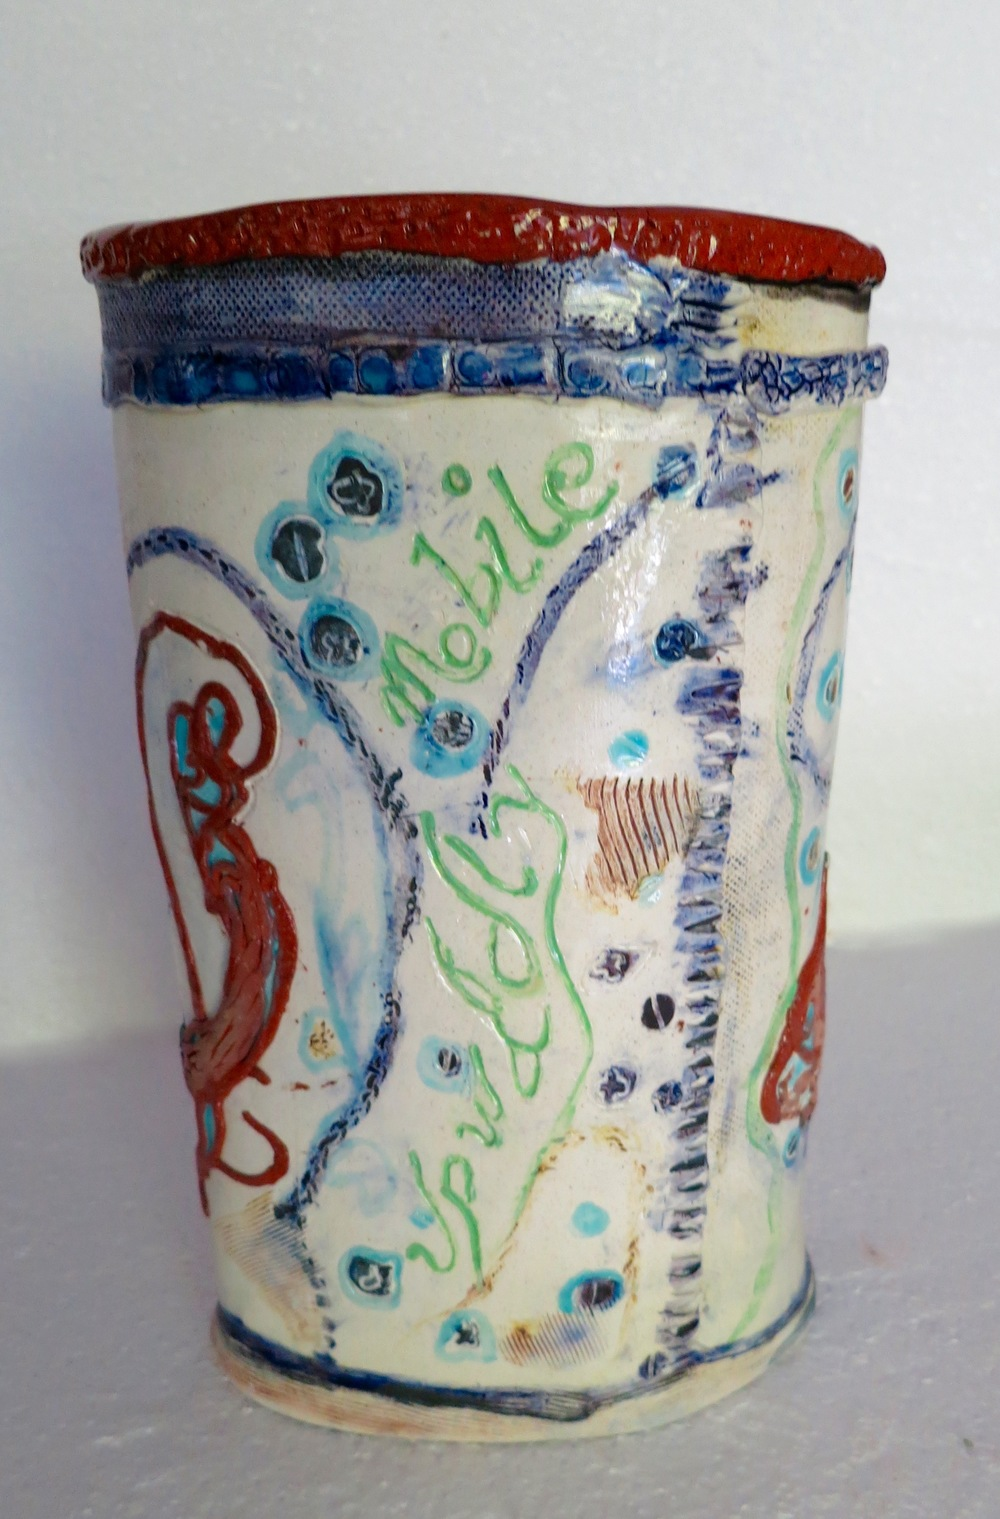 Upwardly Mobile, earthenware vase, front_1892.jpg